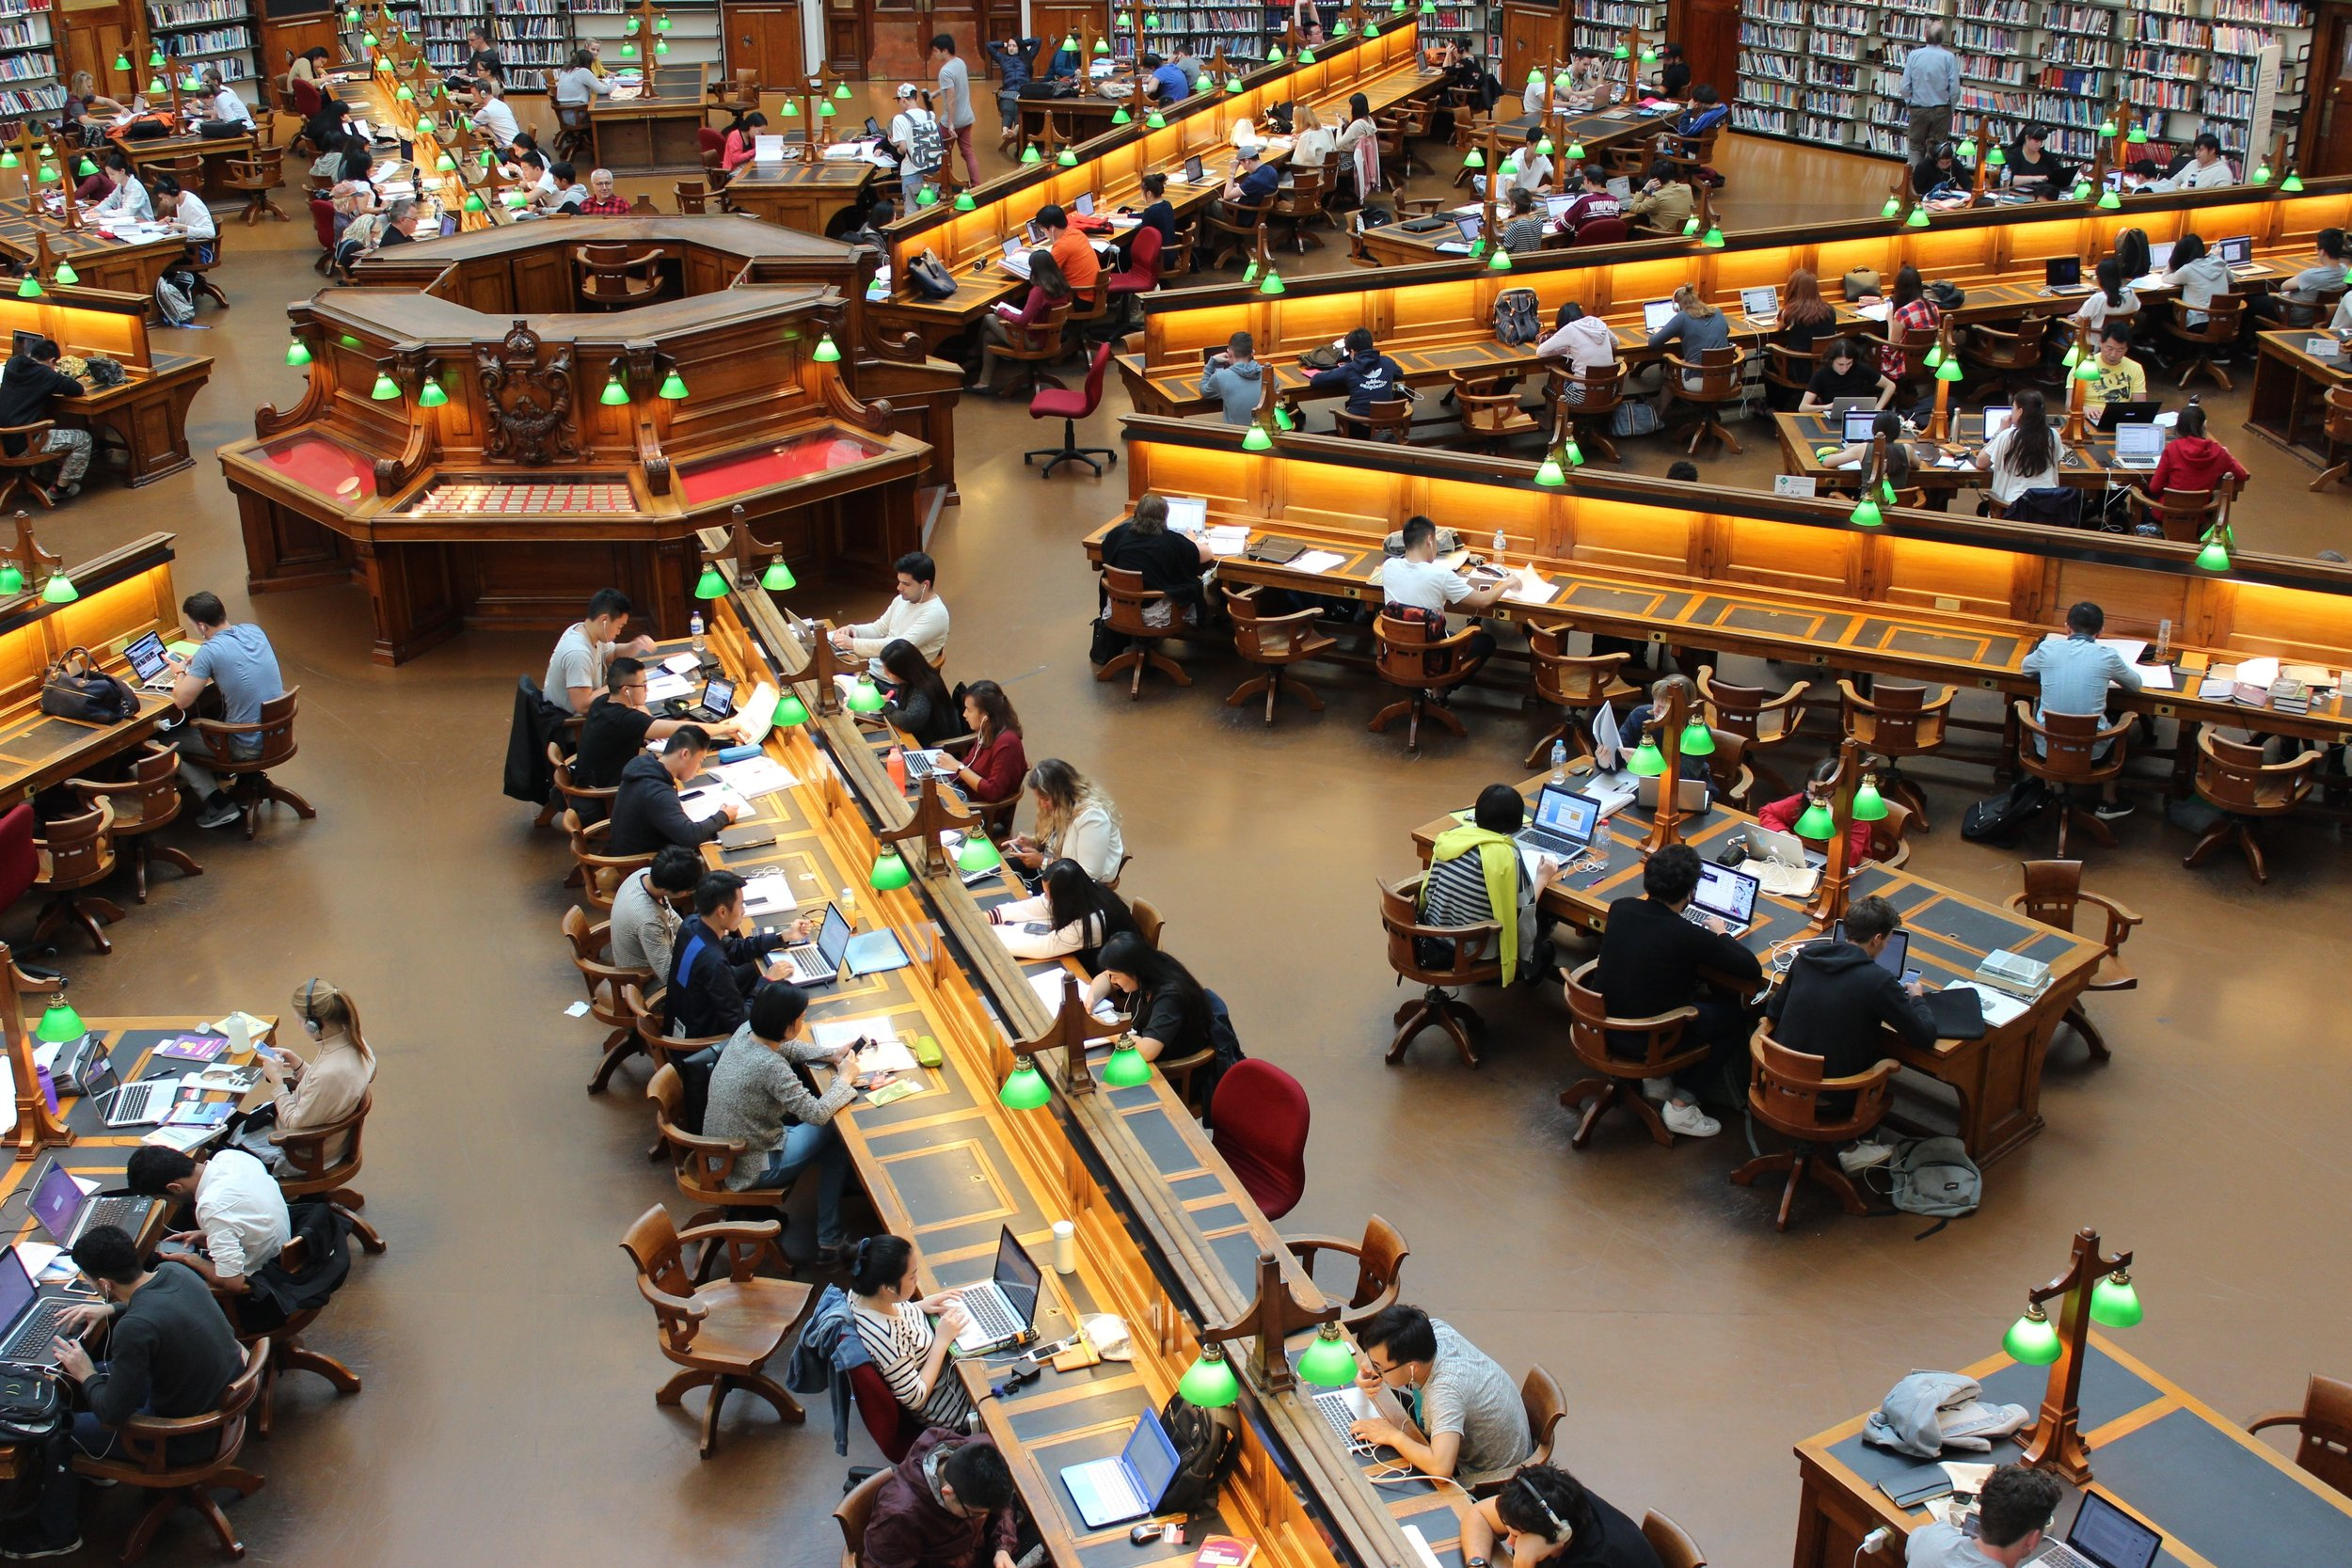 overhead picture of people studying in a library